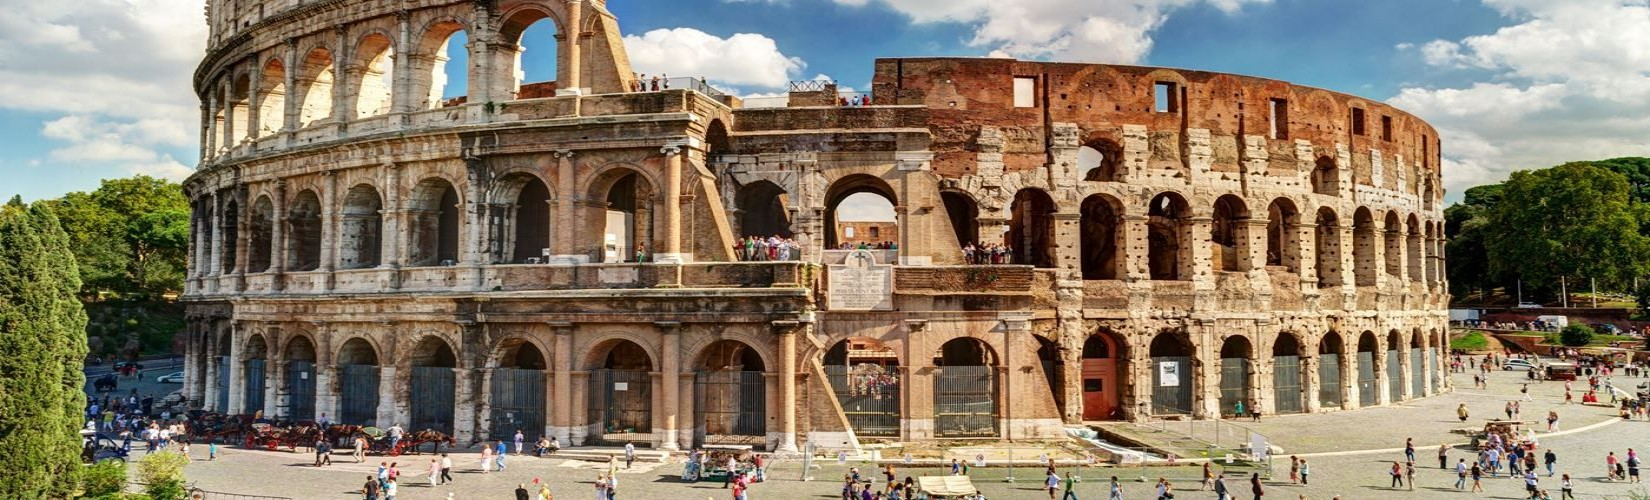 Rome: The Eliteness of the Art, Architecture and Sculpture